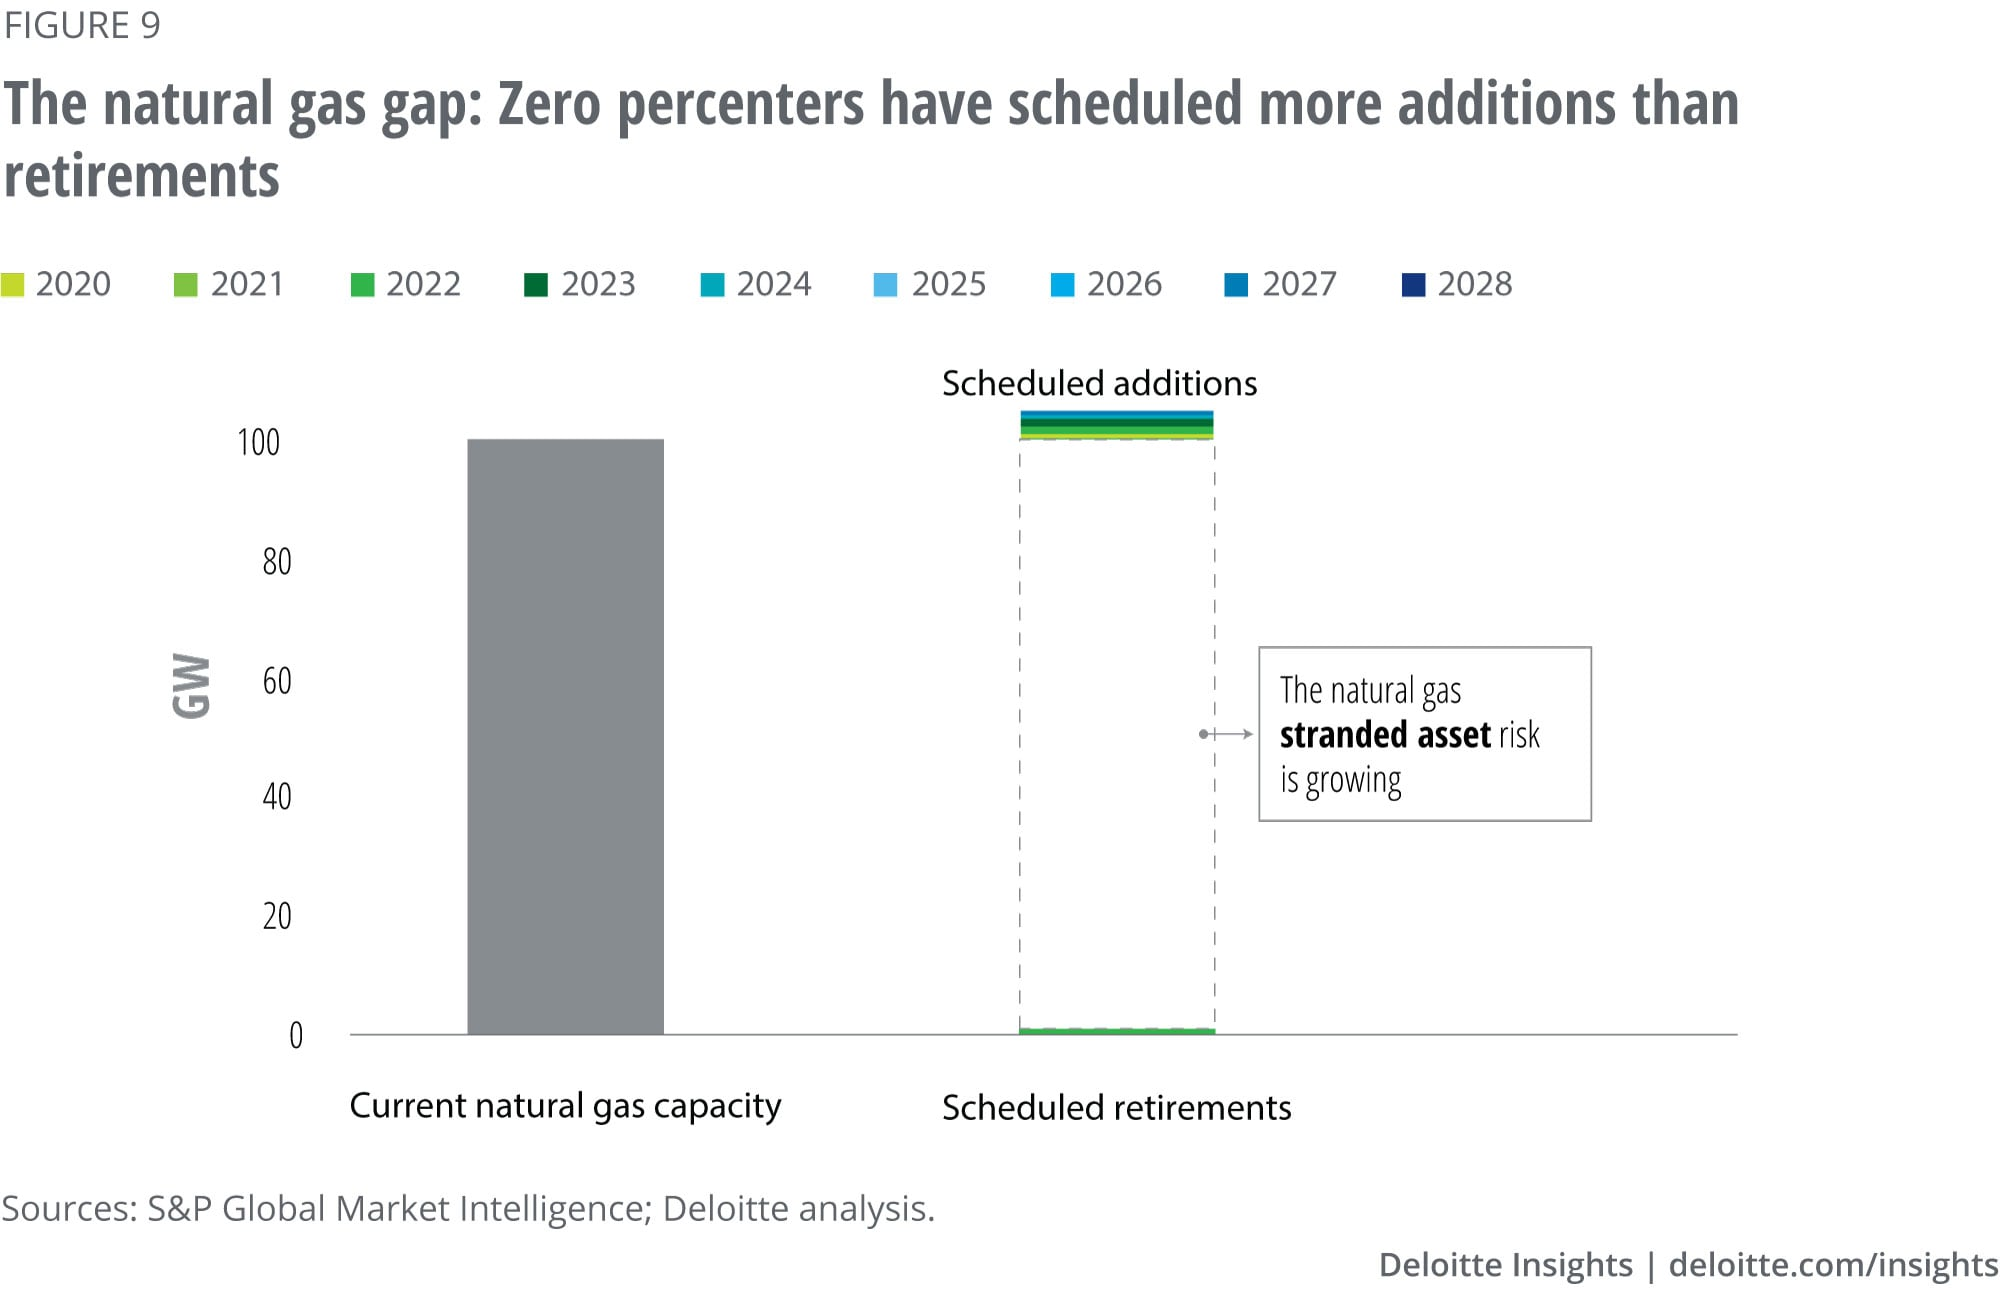 Natural gas capacity and scheduled retirements and additions for the 22 zero-percenter utilities